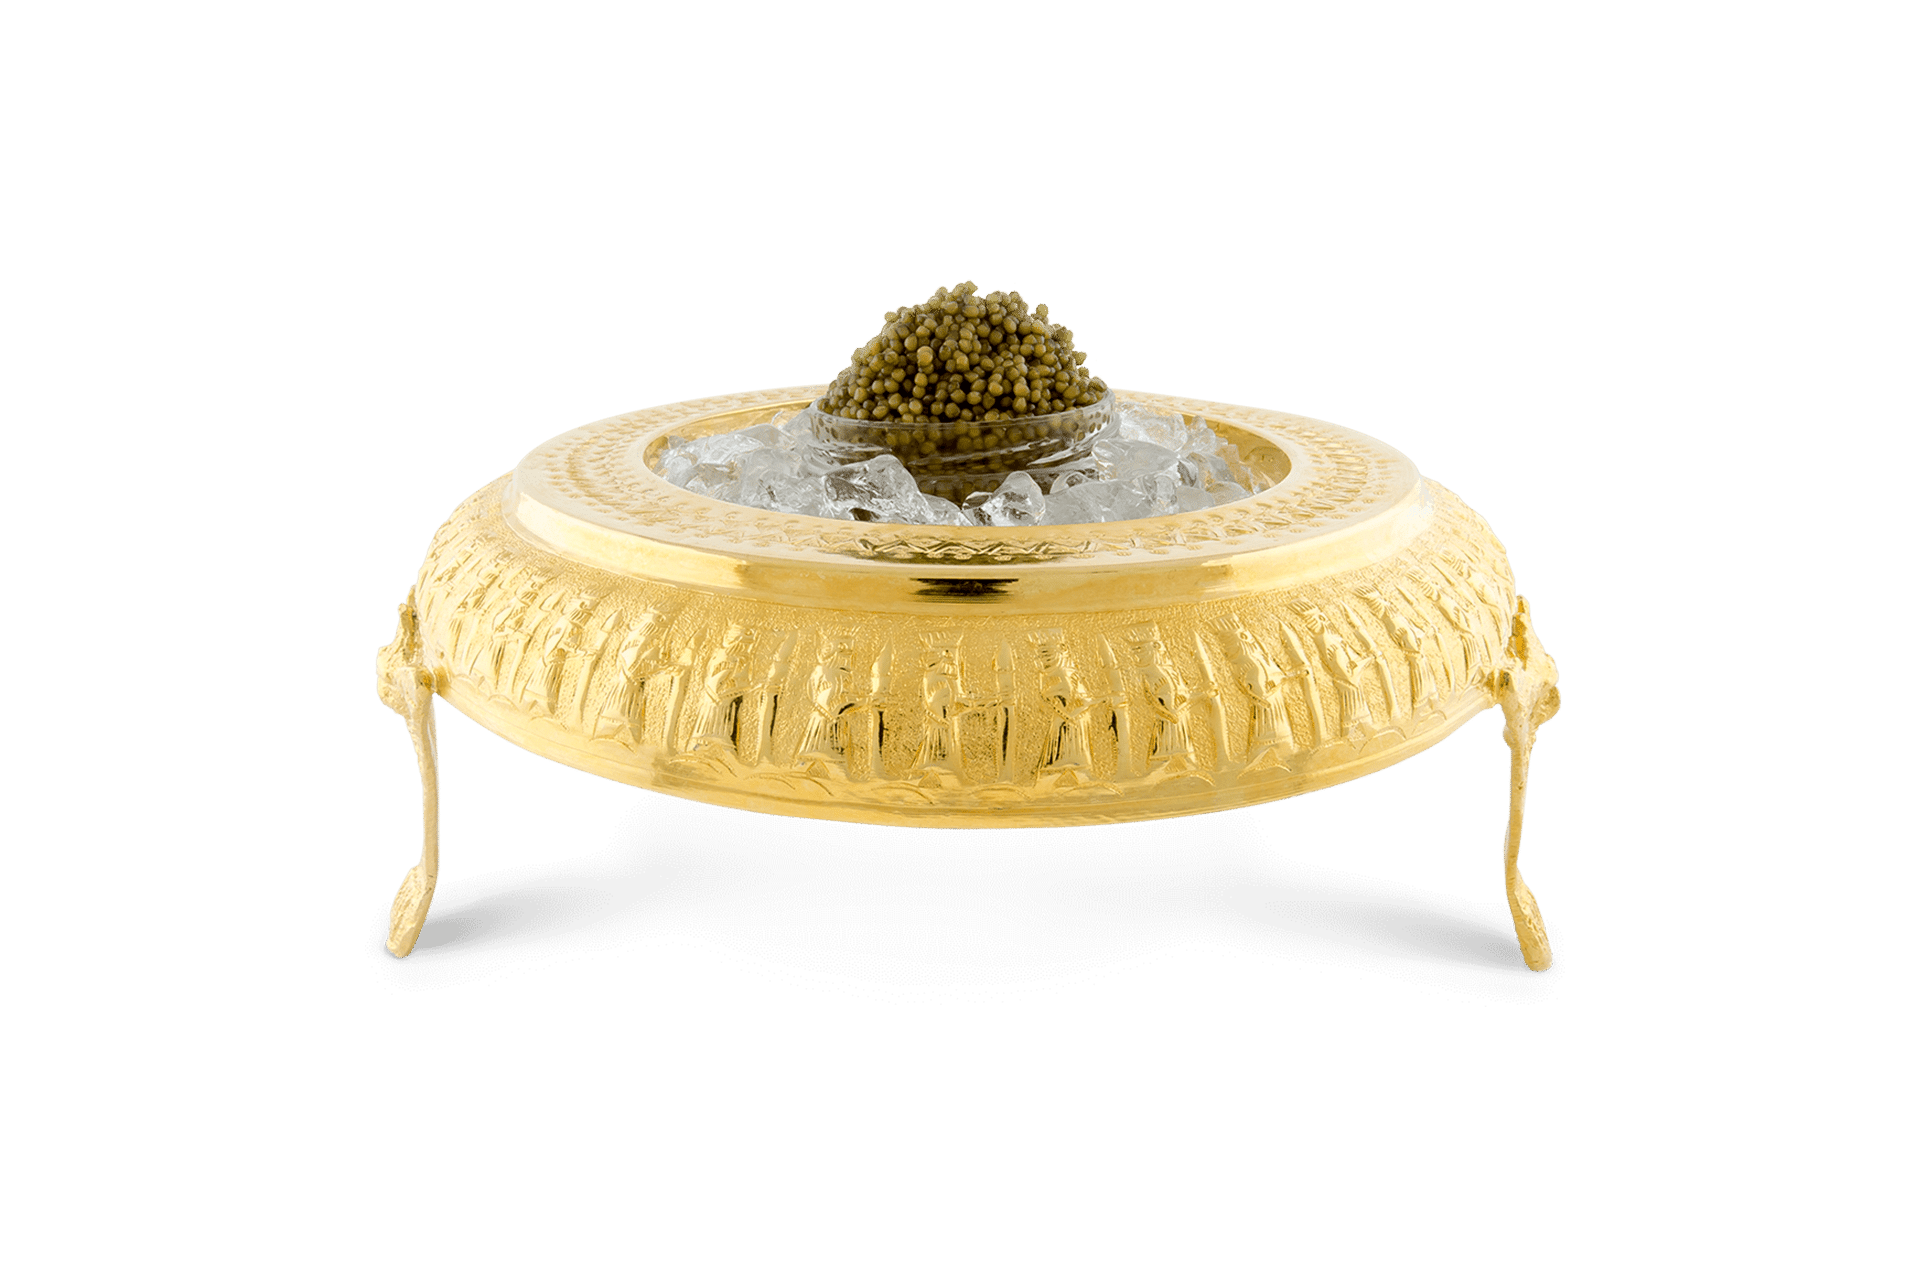 Caviar Bowl with 24k Gold